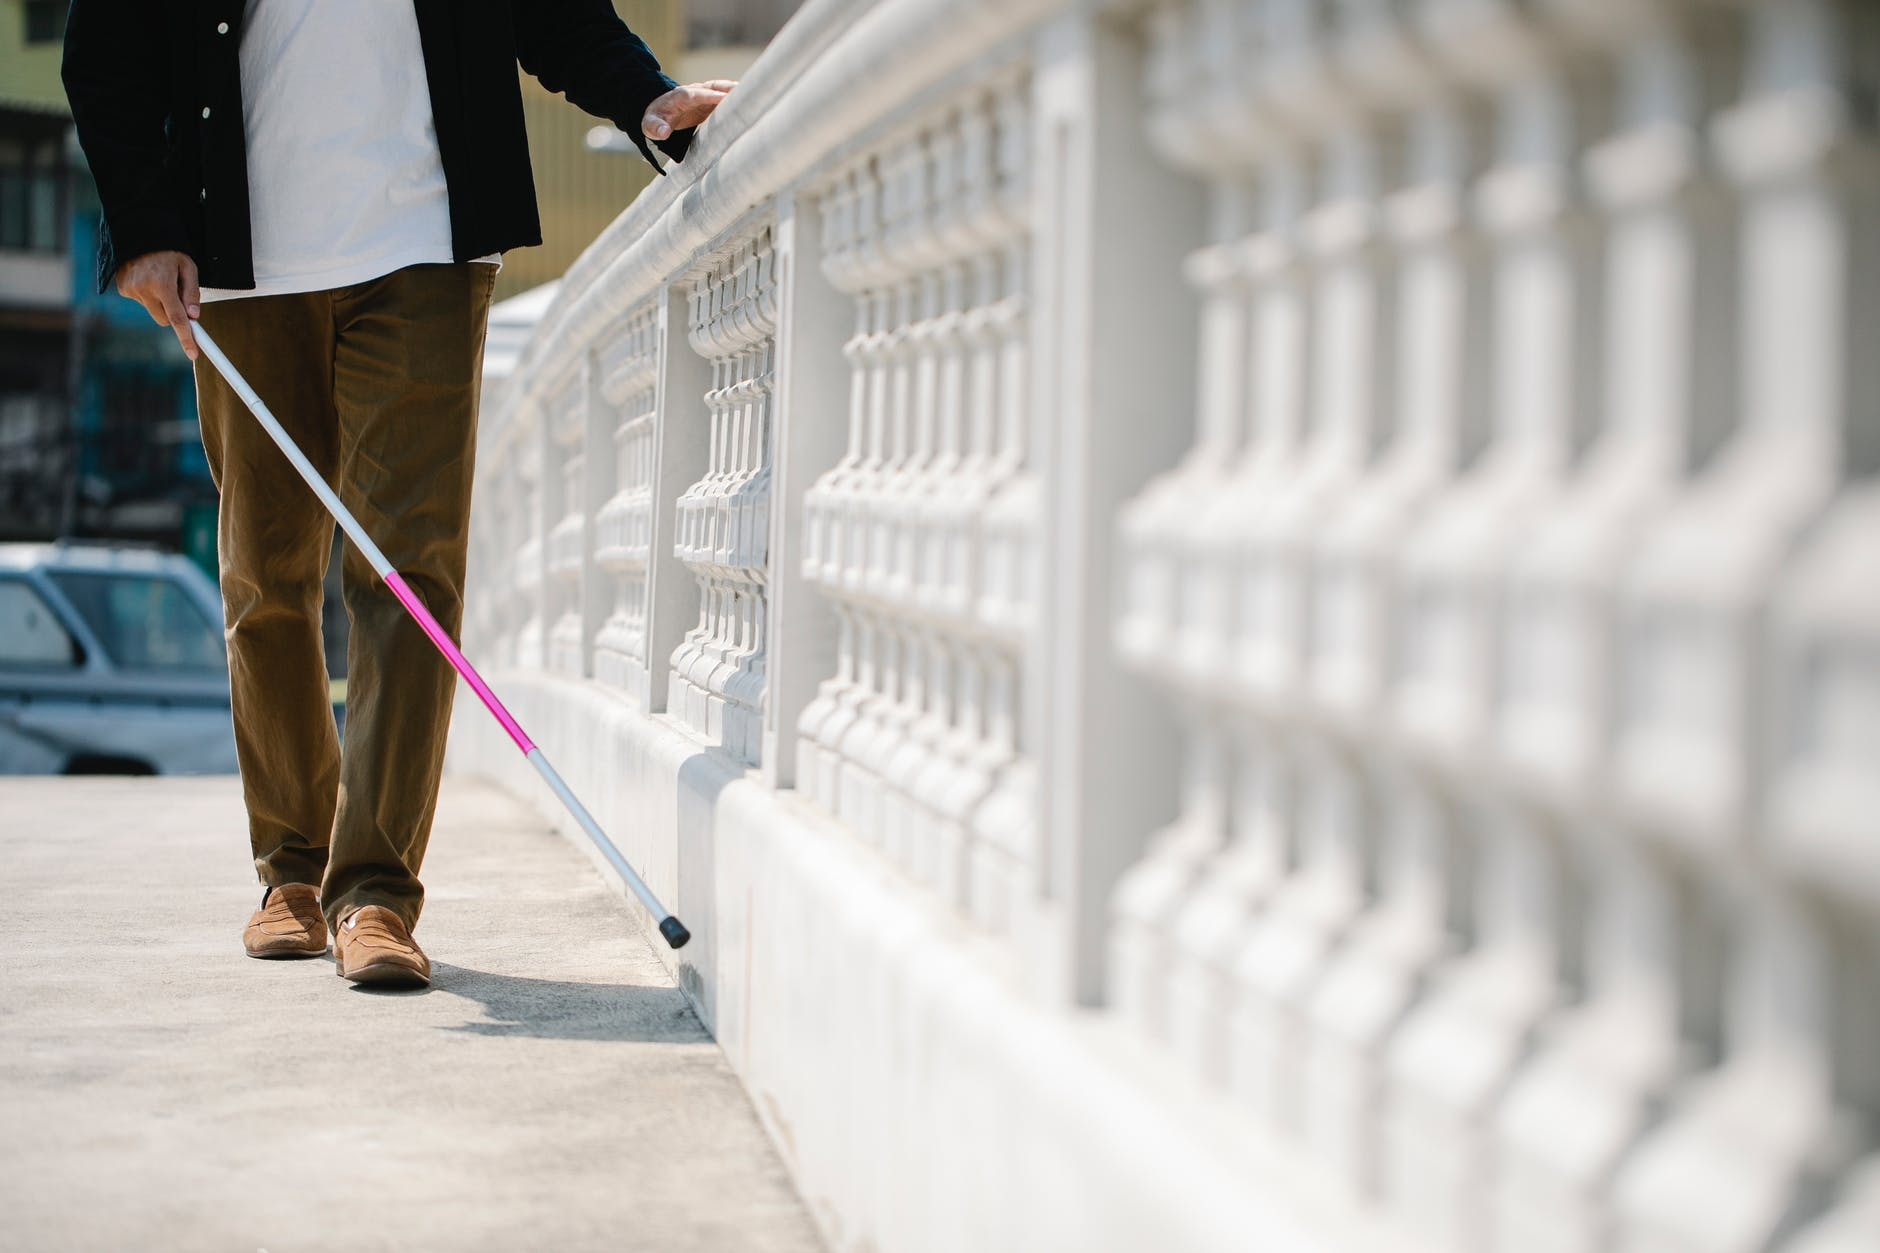 photo of person using cane as a walking guide